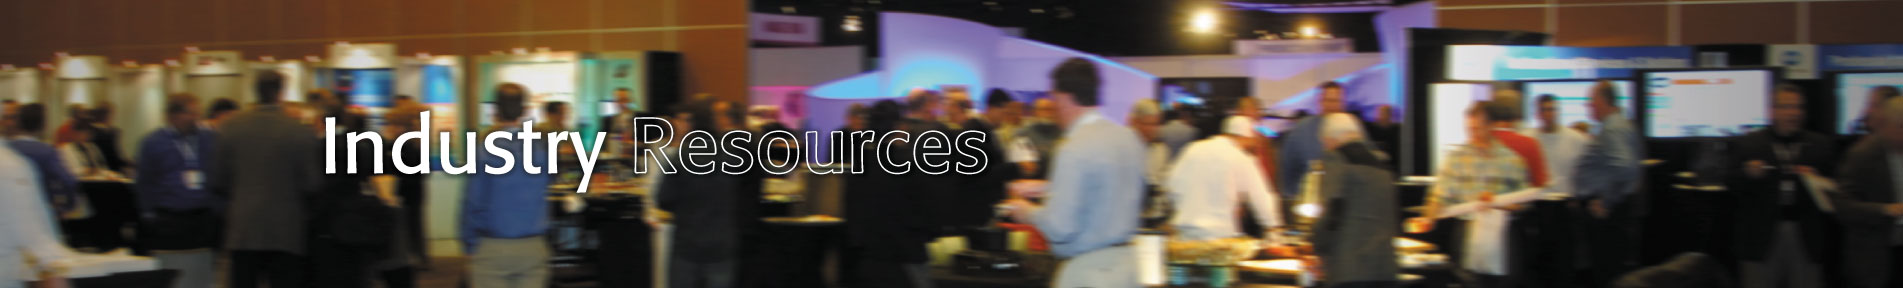 Trade Show Industry Resources